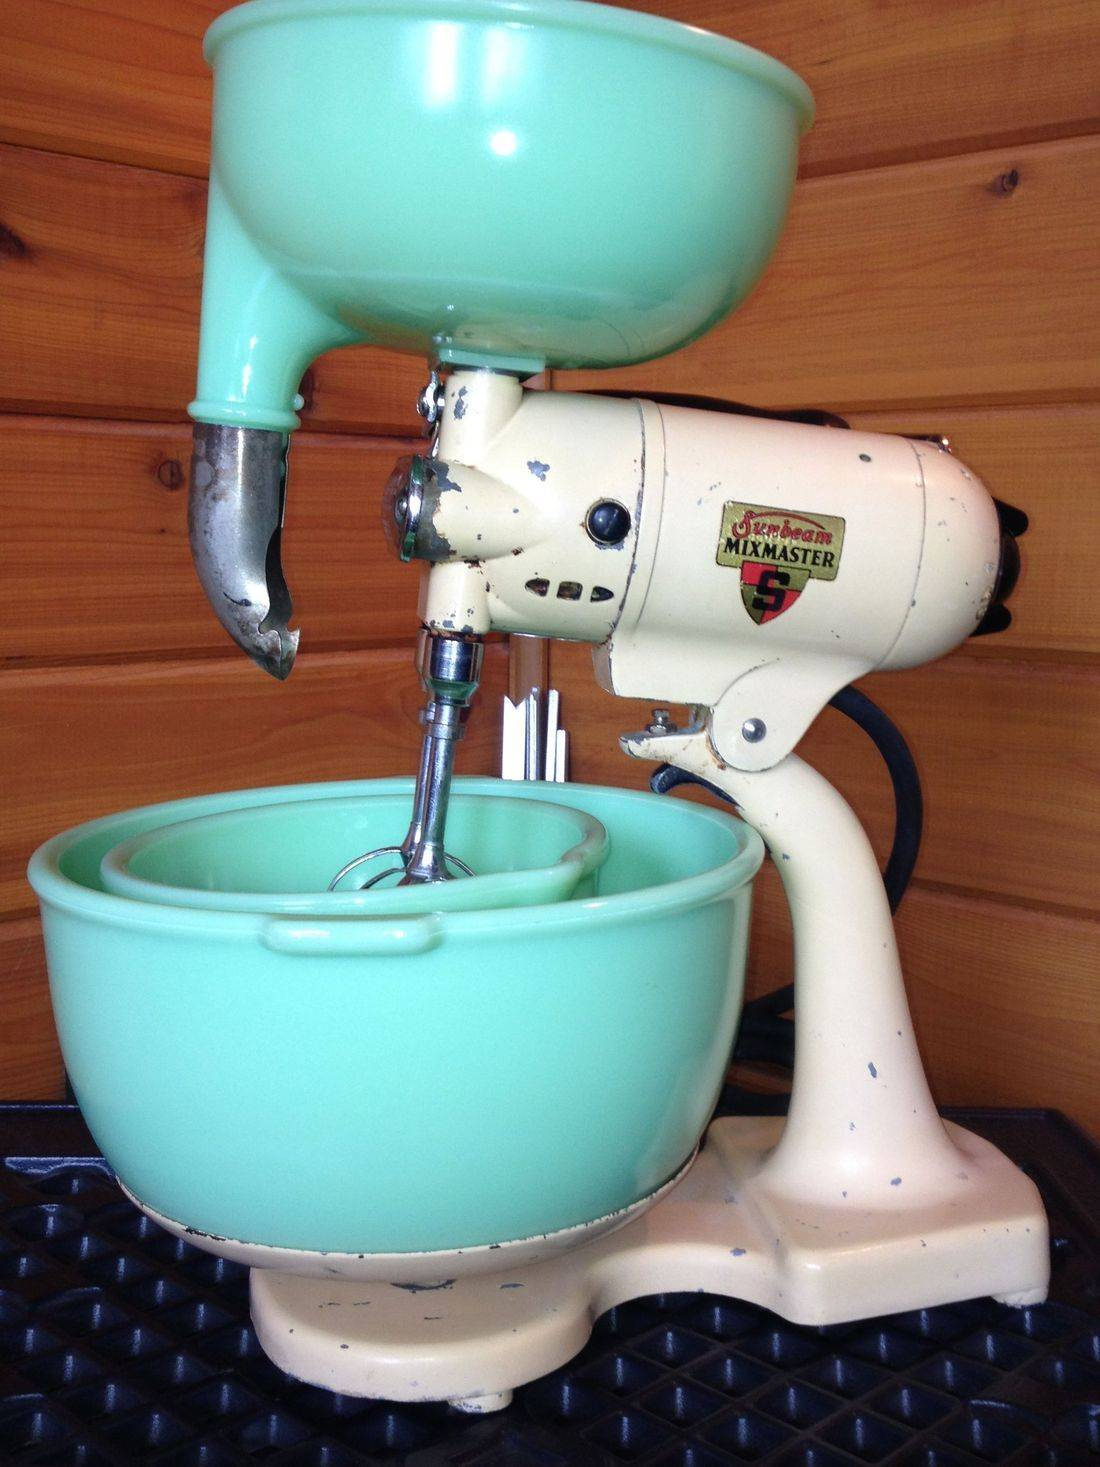 Vintage Sunbeam Mixer with Jadeite bowls and Juicer